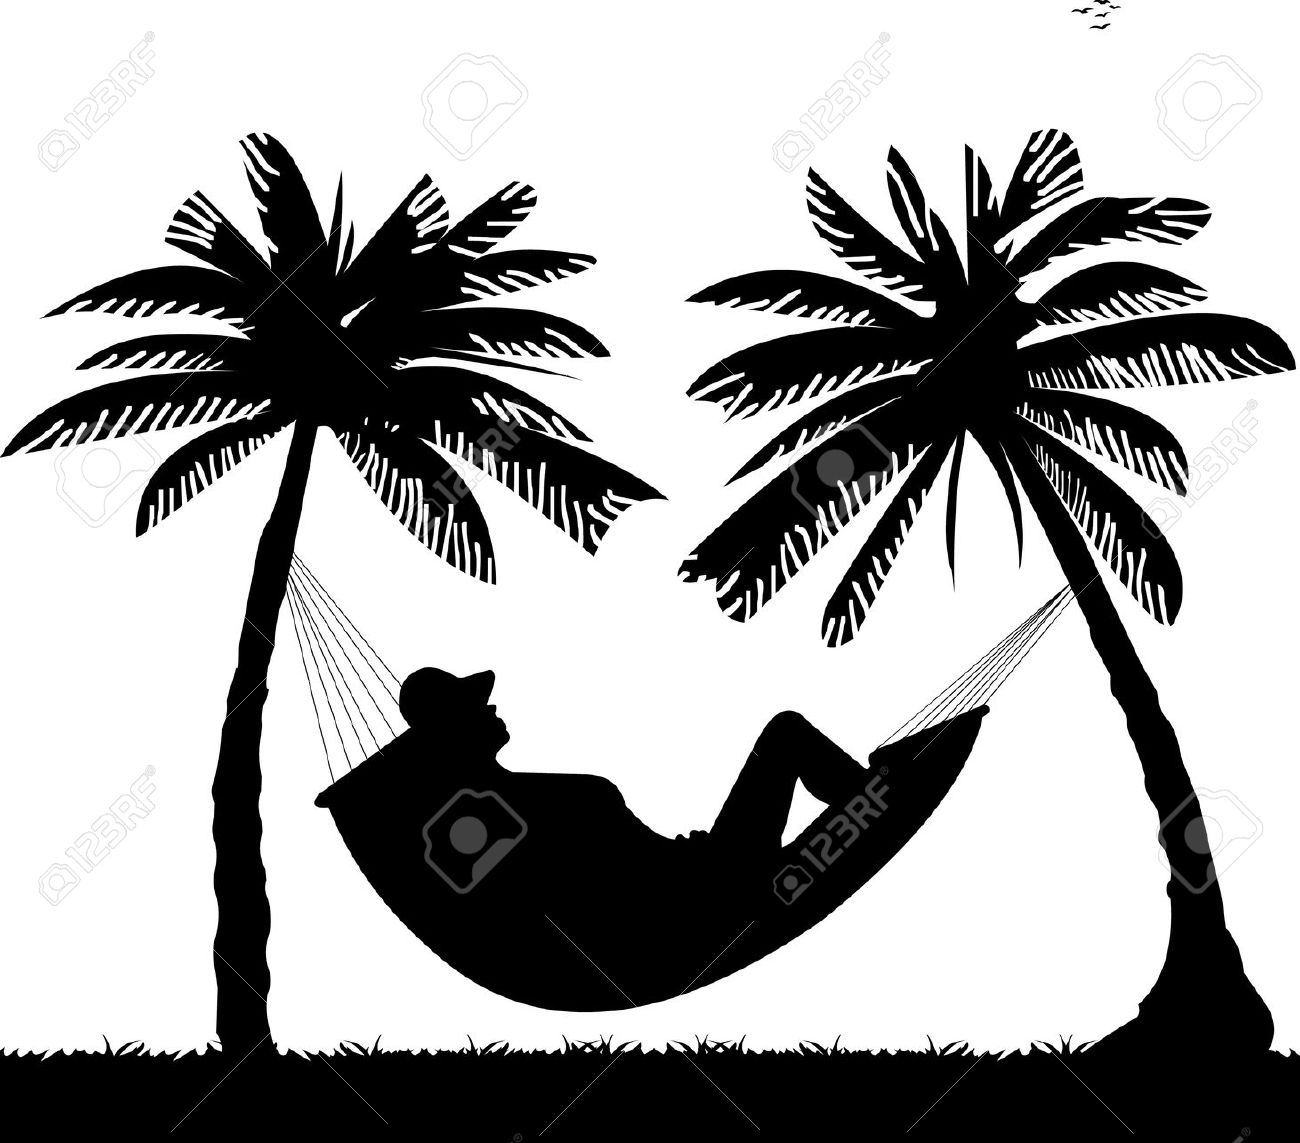 2ab715591708c7c783e4fcb39403cb8b_hammock-silhouette-of-girl-silhouette-of-couple-in-hammock-clipart_1300-1143.jpeg